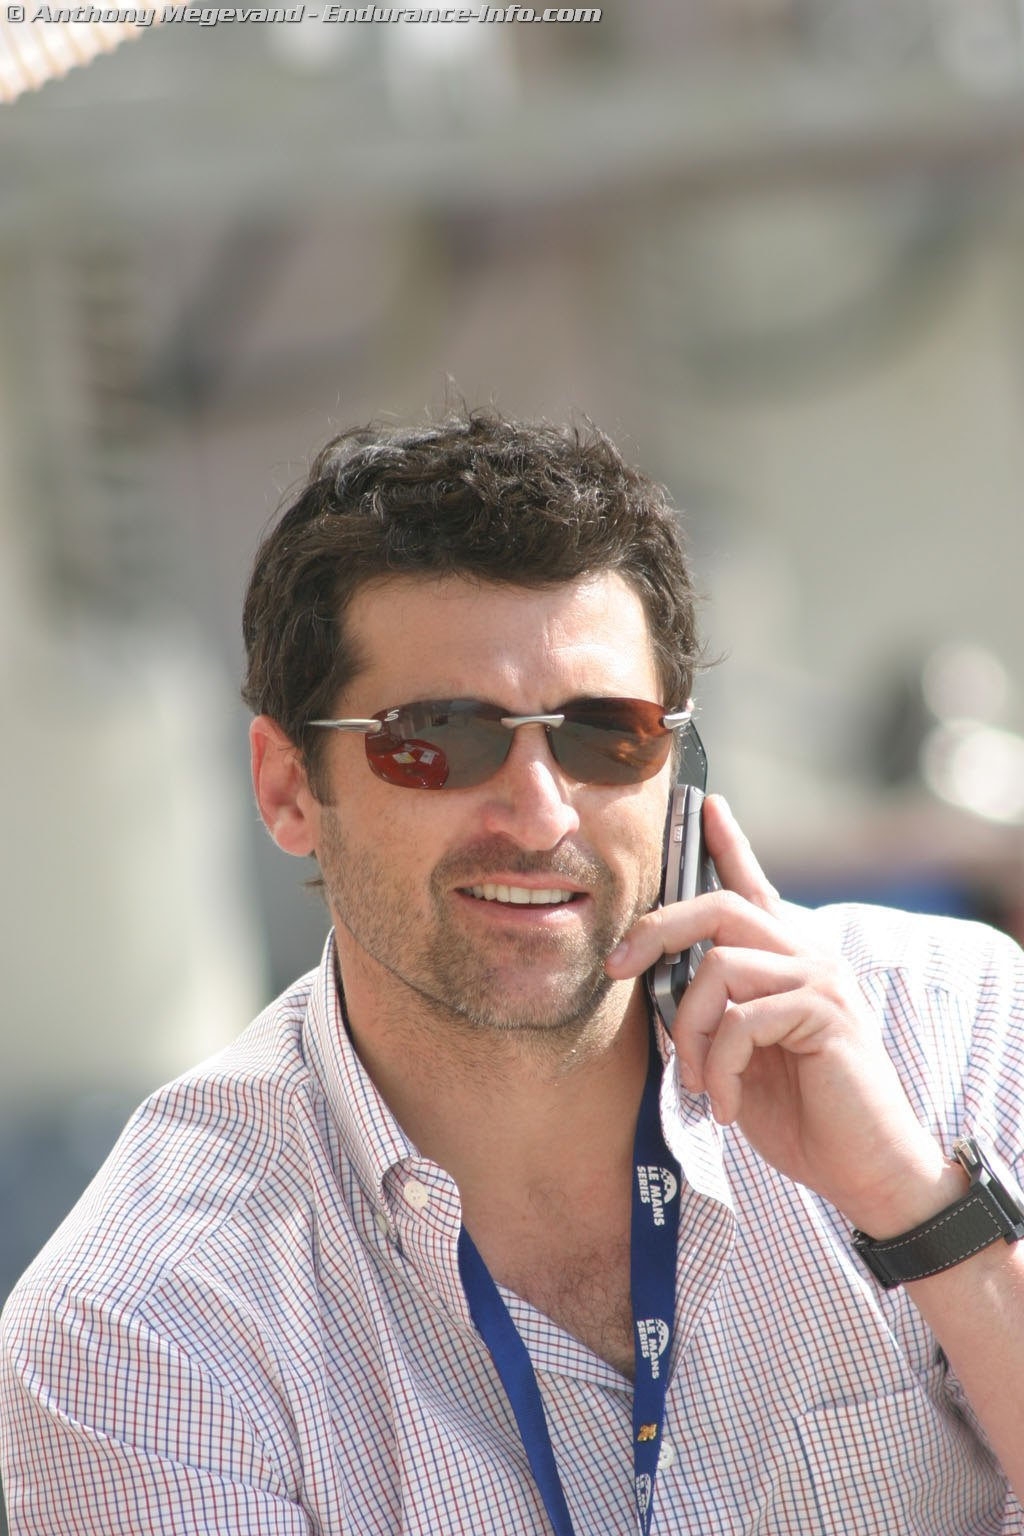 Patrick at Bugatti - patrick-dempsey photo